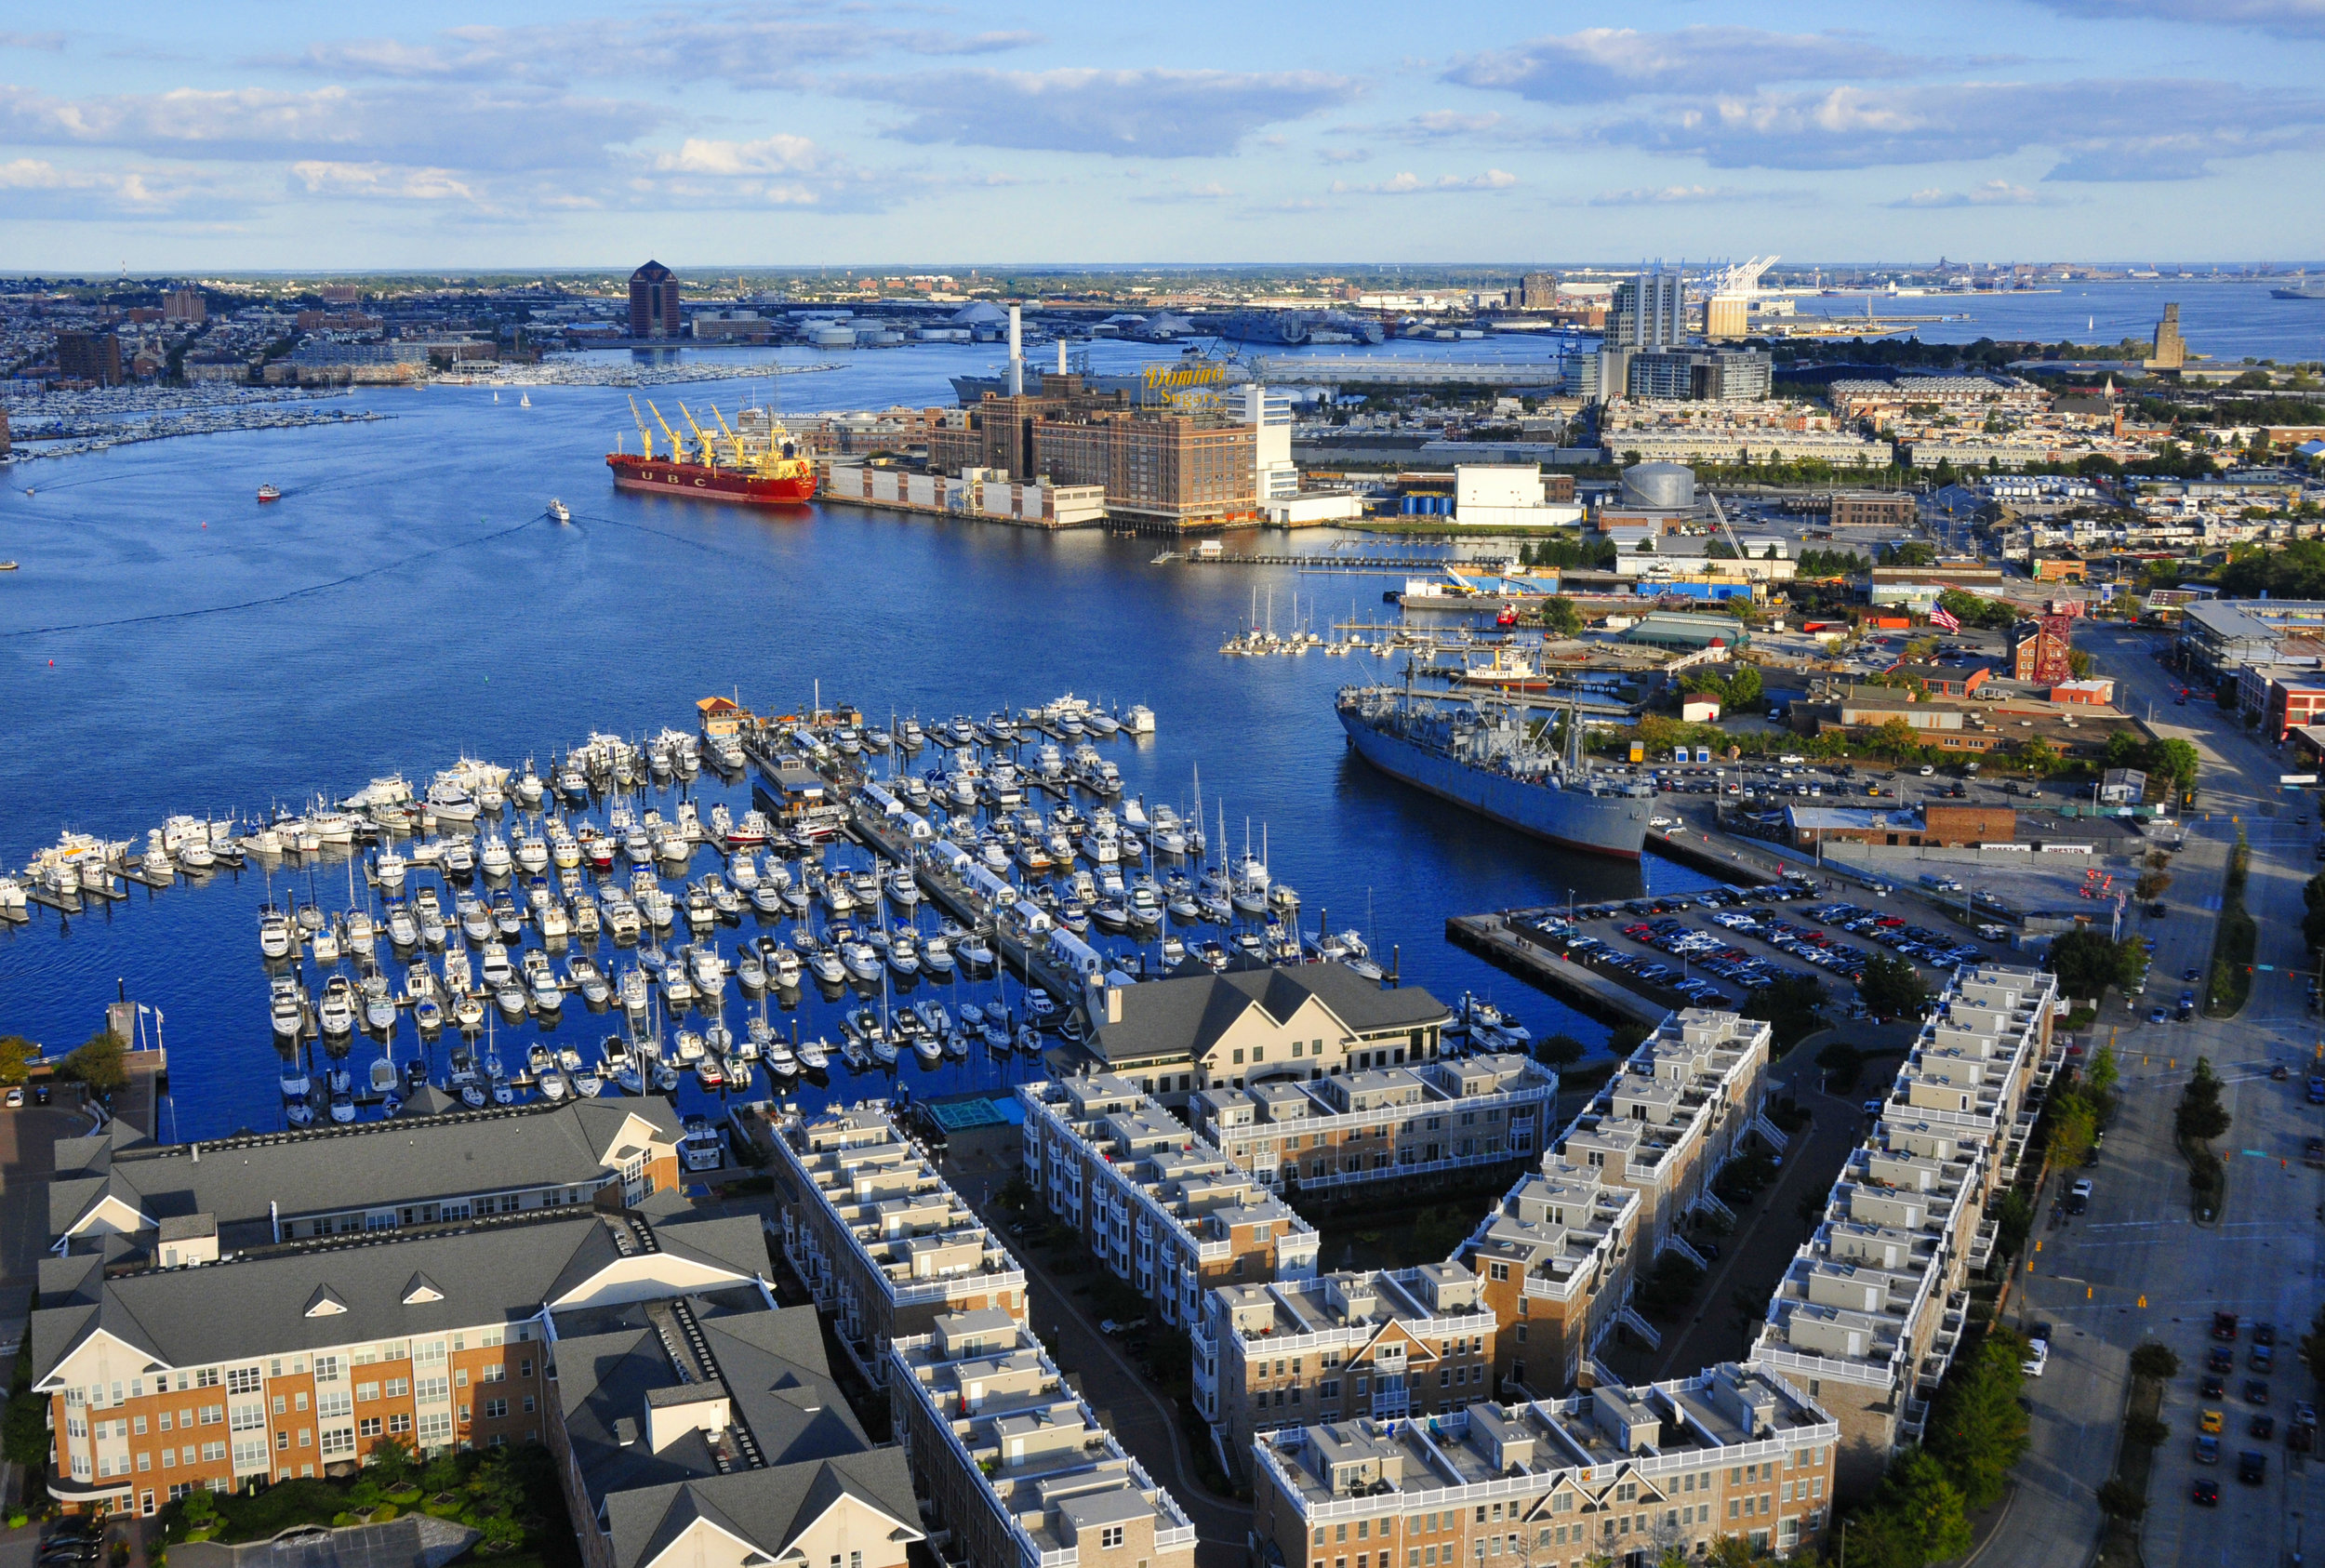 Harborview_Aerial_9.jpg